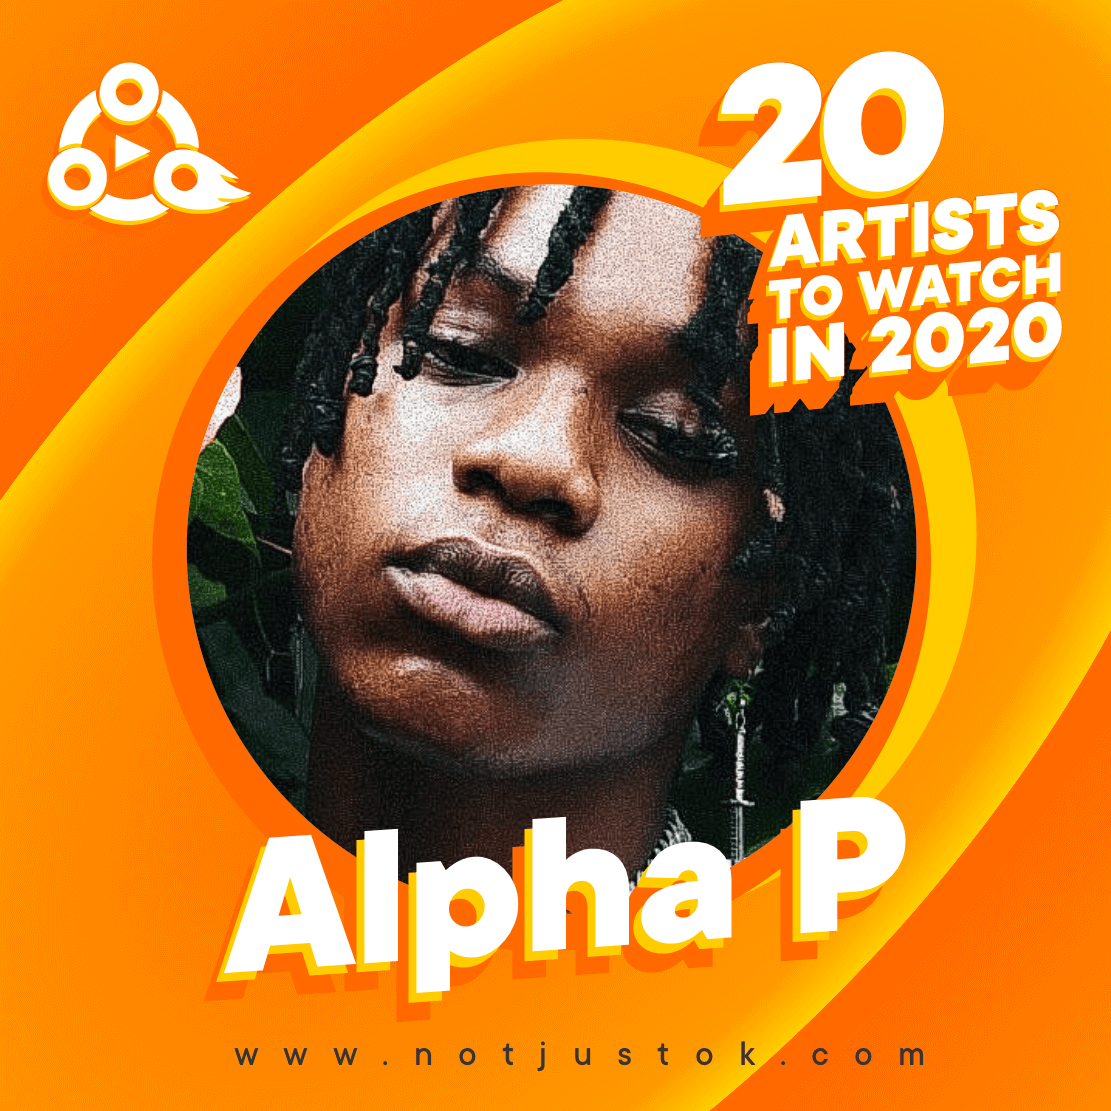 The 20 Artistes To Watch In 2020 - Alpha P